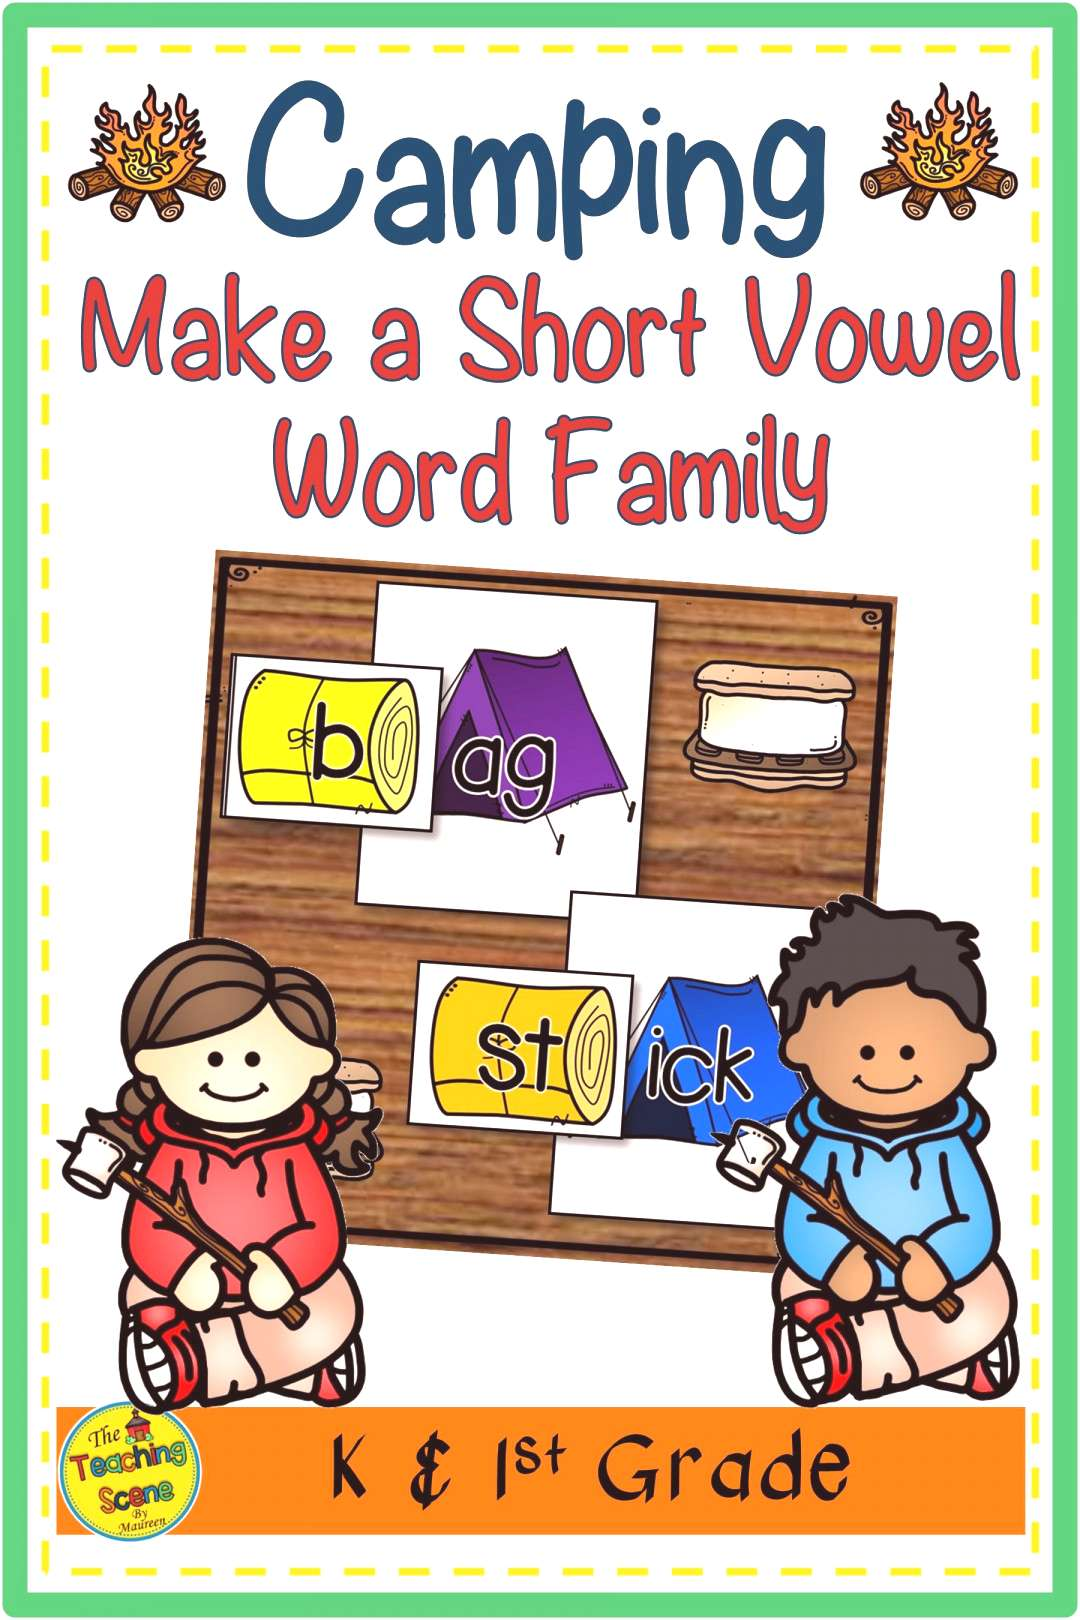 Camping Make a Short Vowel Word Family Phonics Game Do you need a camping phonics center or activit